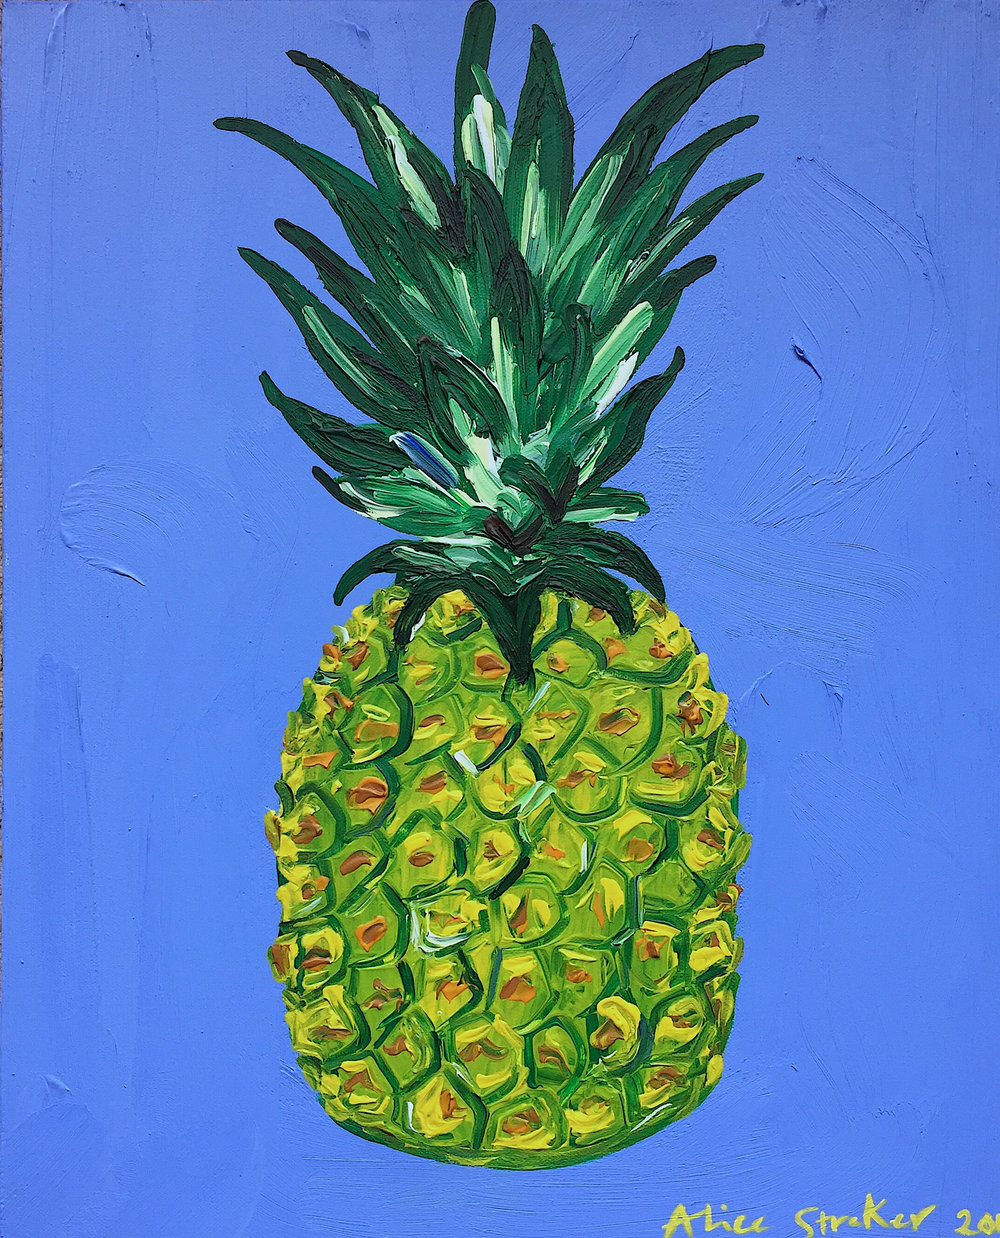 Pineapple Whole Alice Straker.jpg